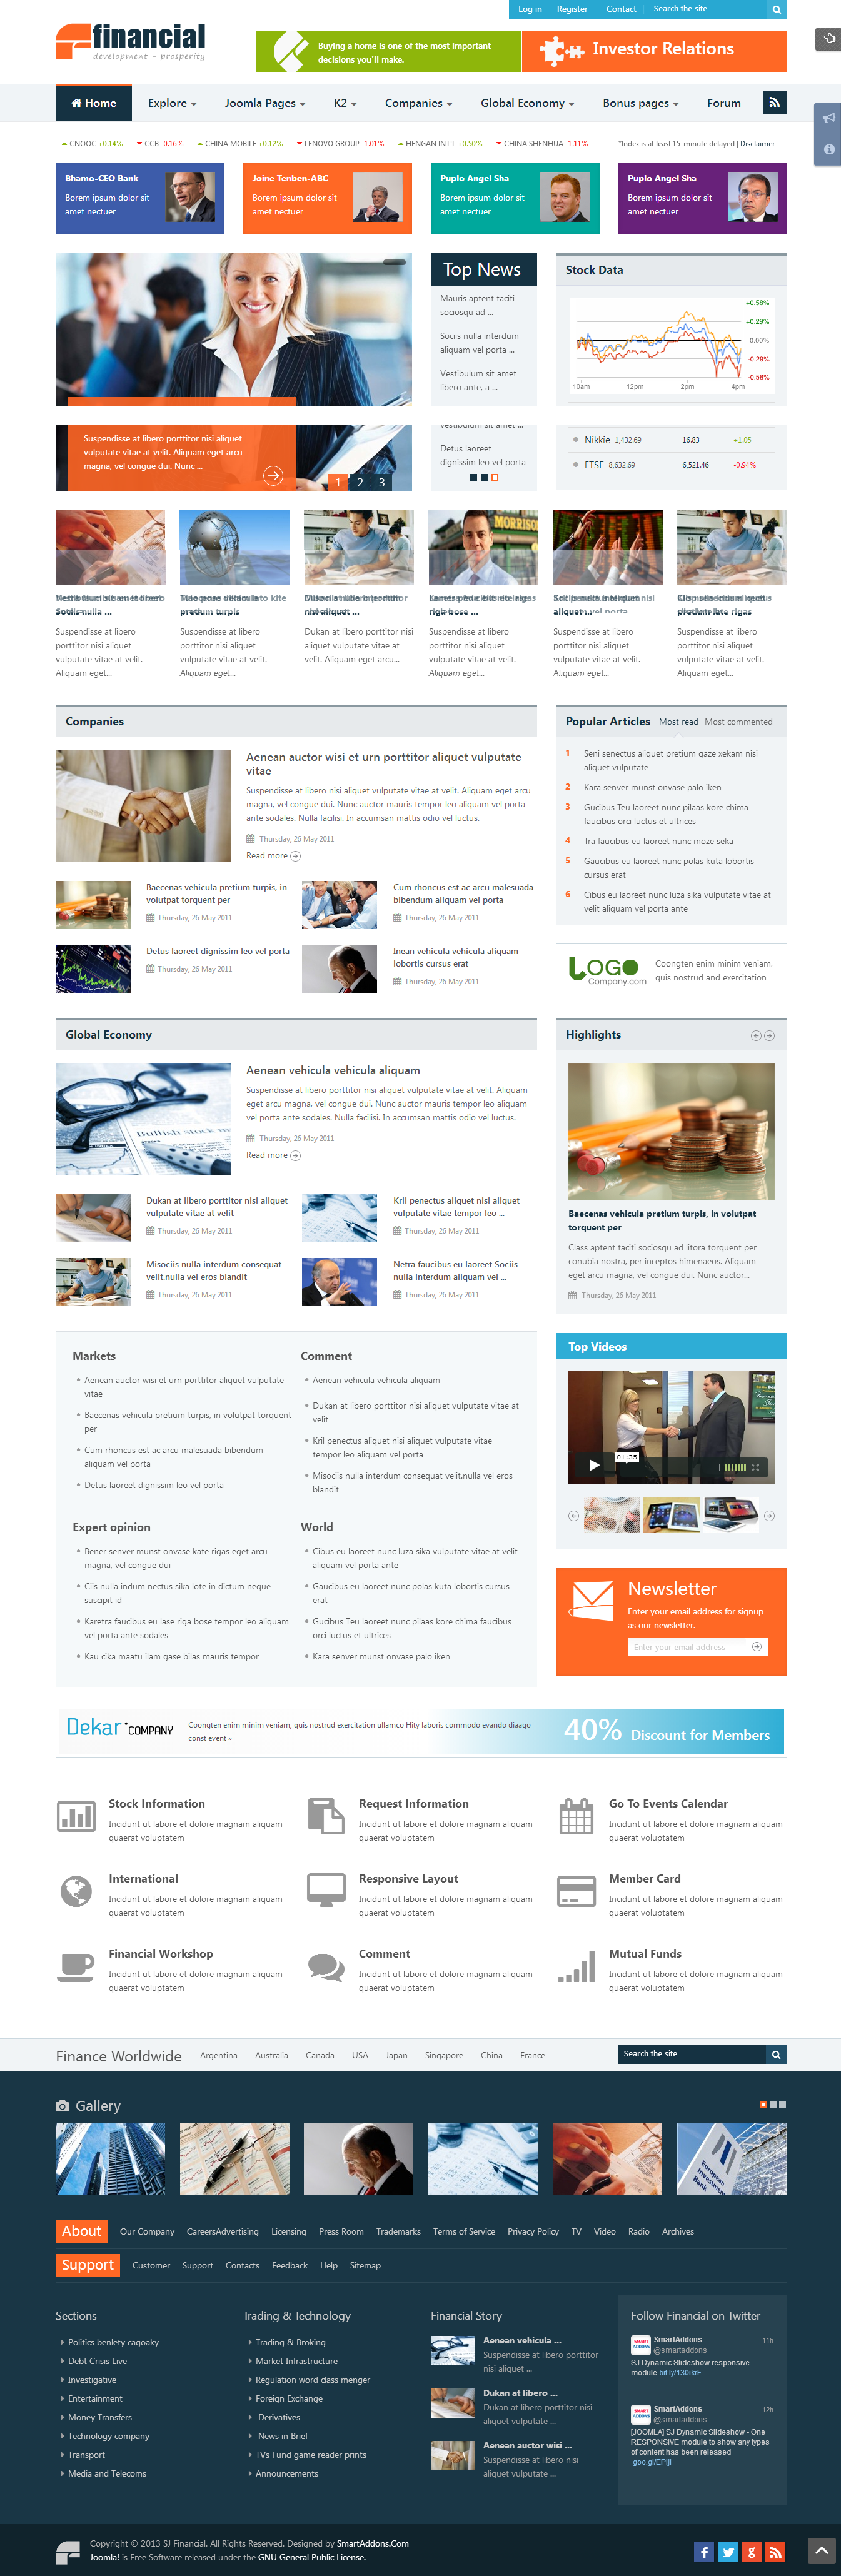 SJ Financial - Responsive Joomla Financial News Template - 01index.png